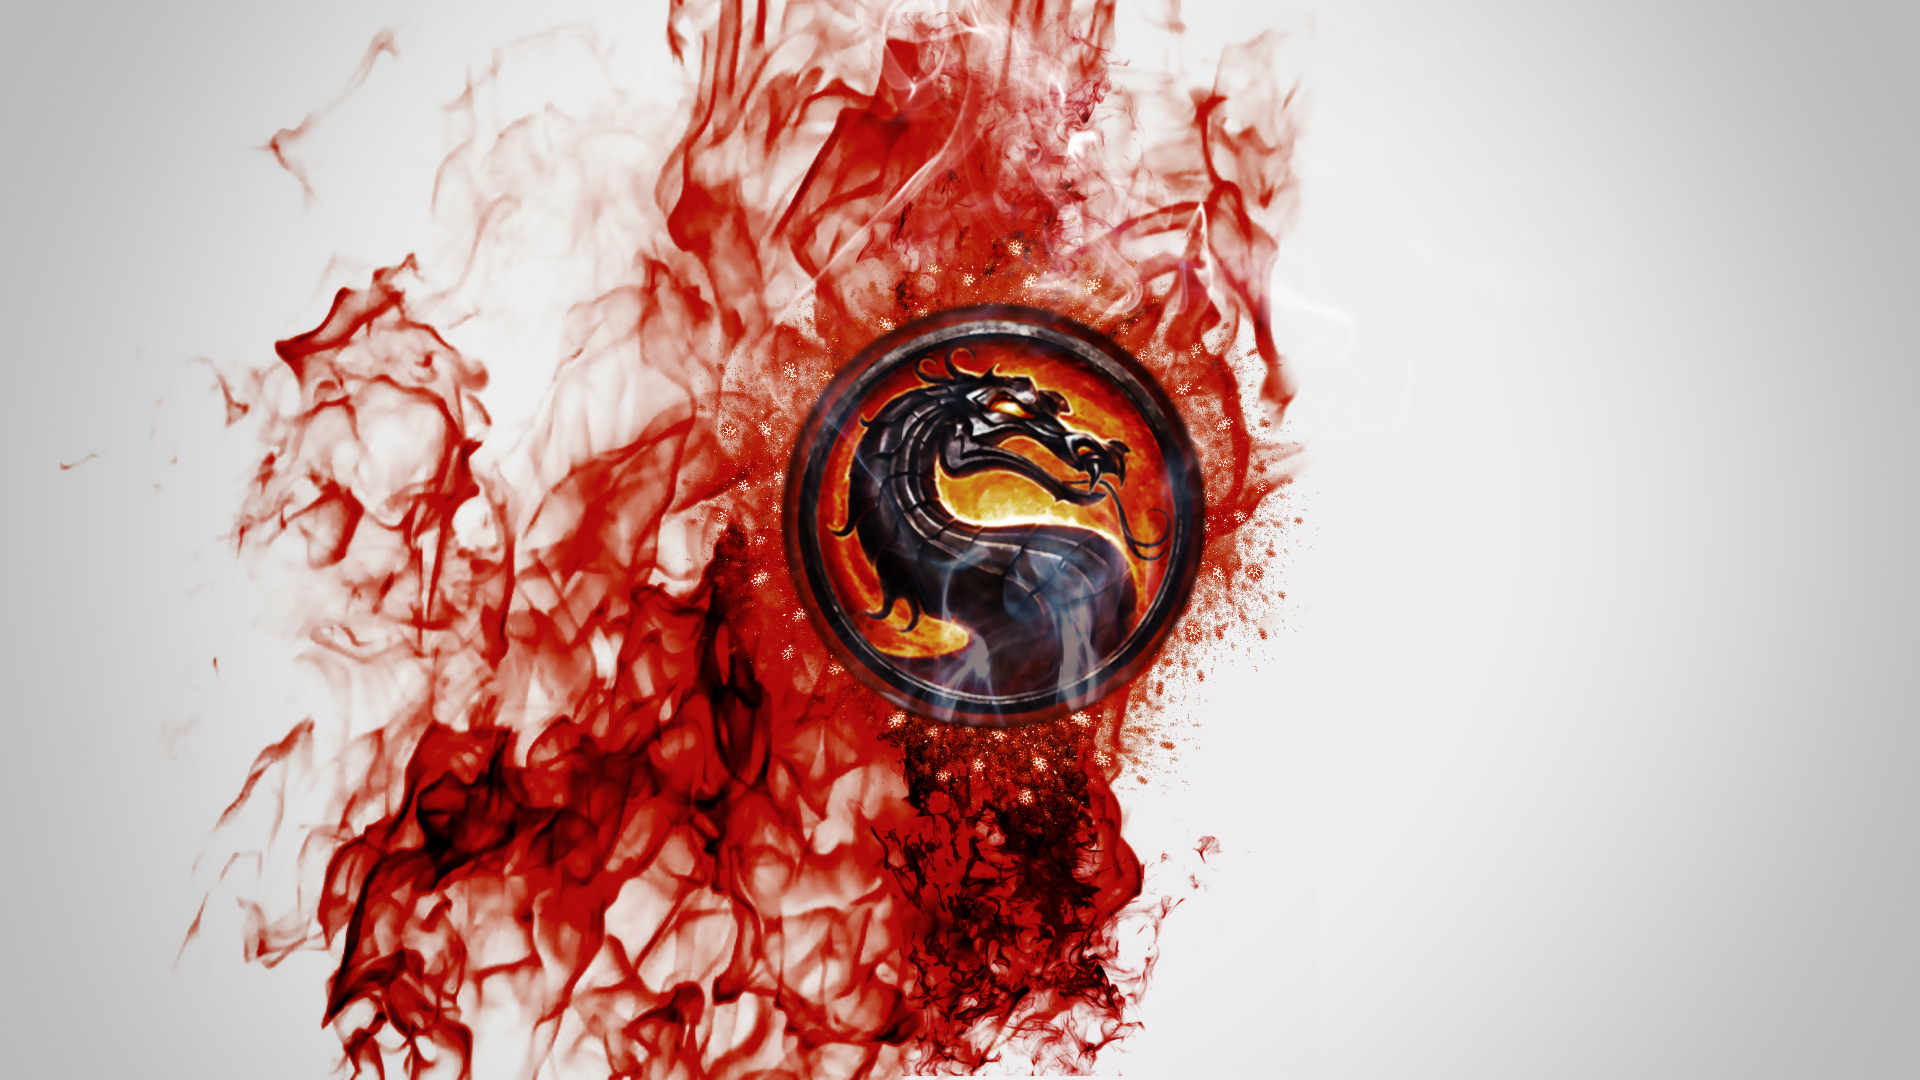 Mortal Kombat wallpaper Dragon in blood